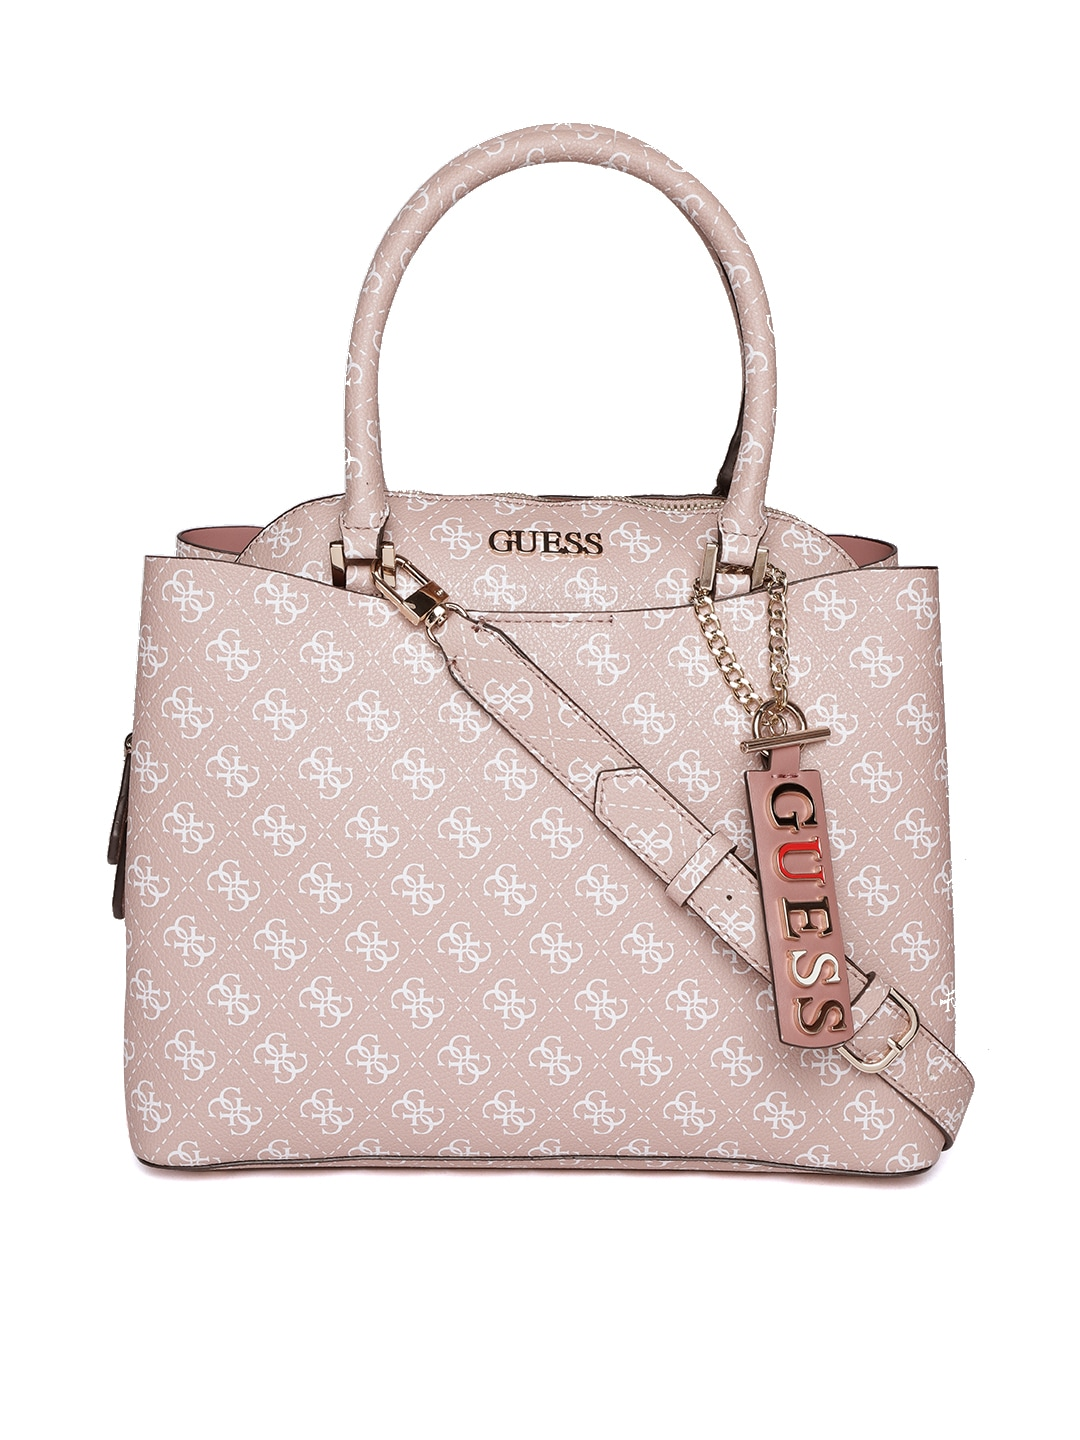 G By Guess Bags Usa